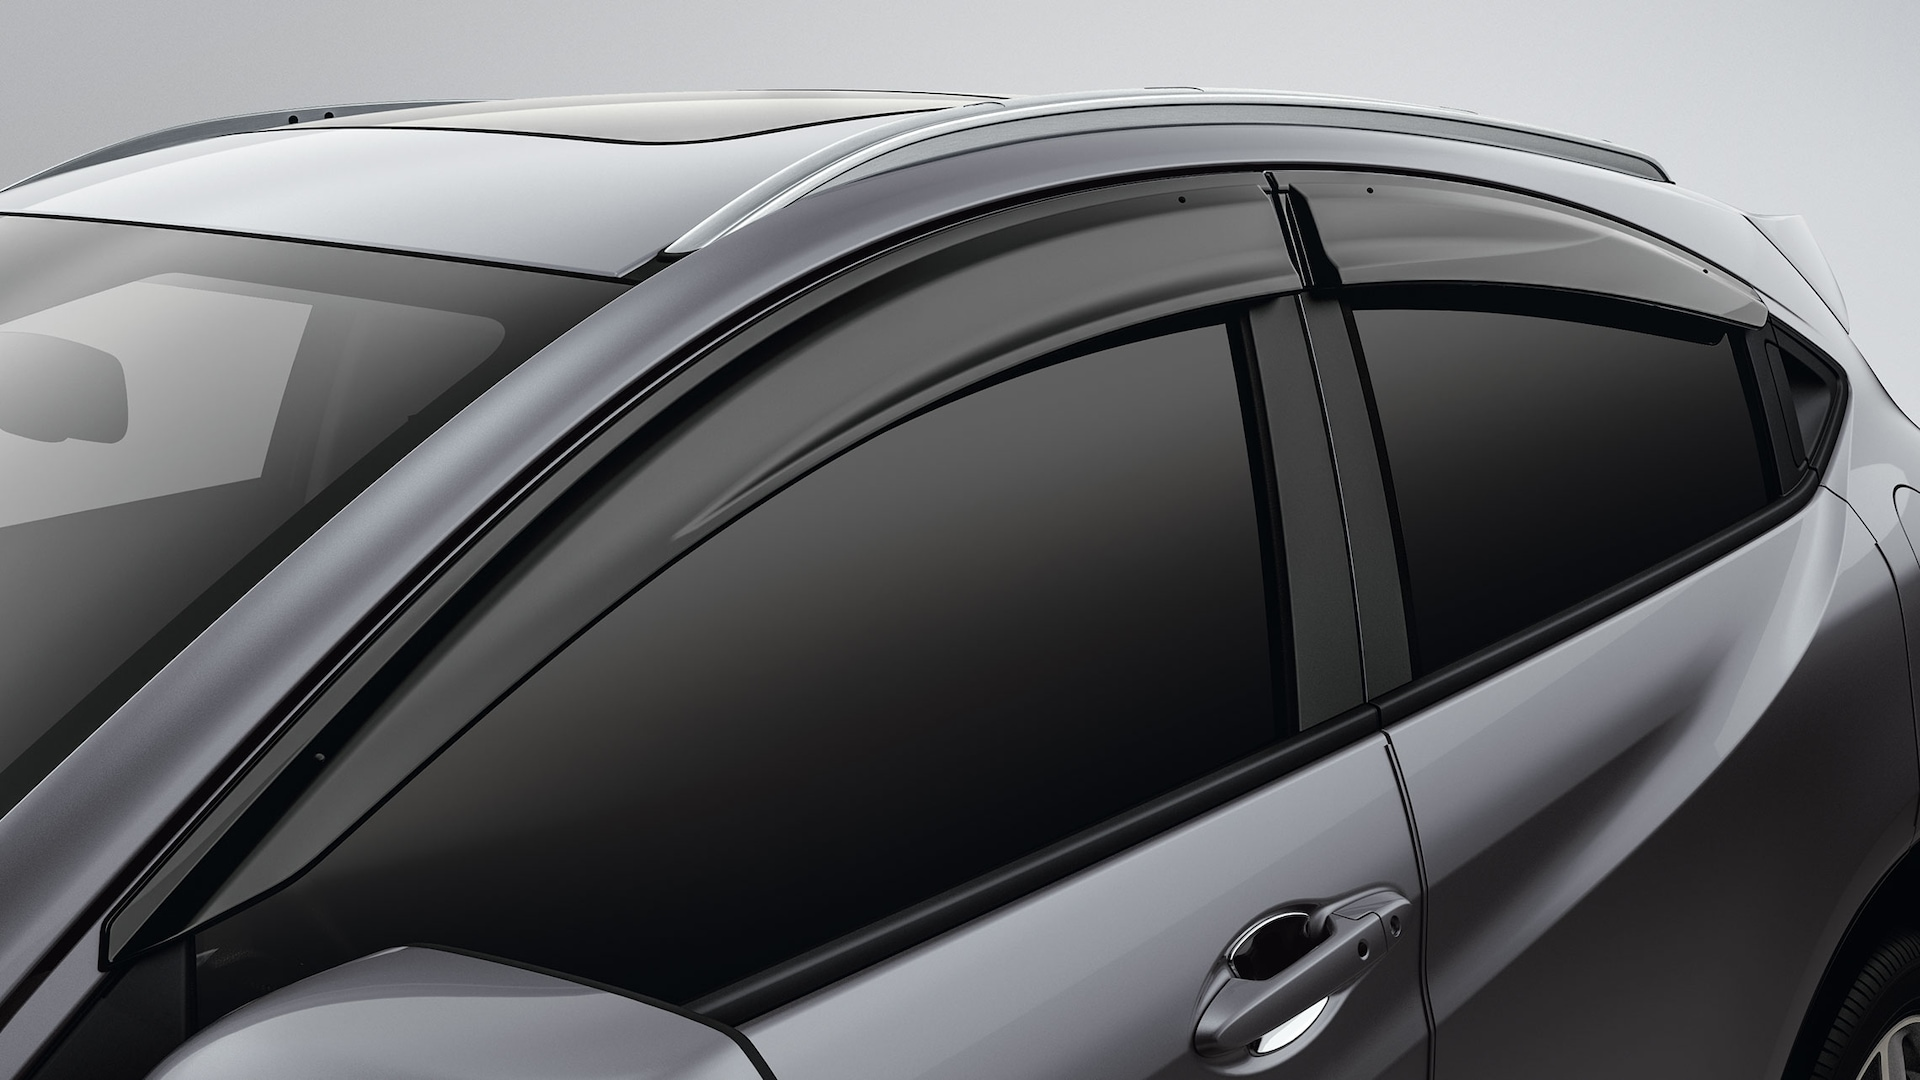 Window visor detail on the 2020 Honda HR-V EX-L in Lunar Silver Metallic.